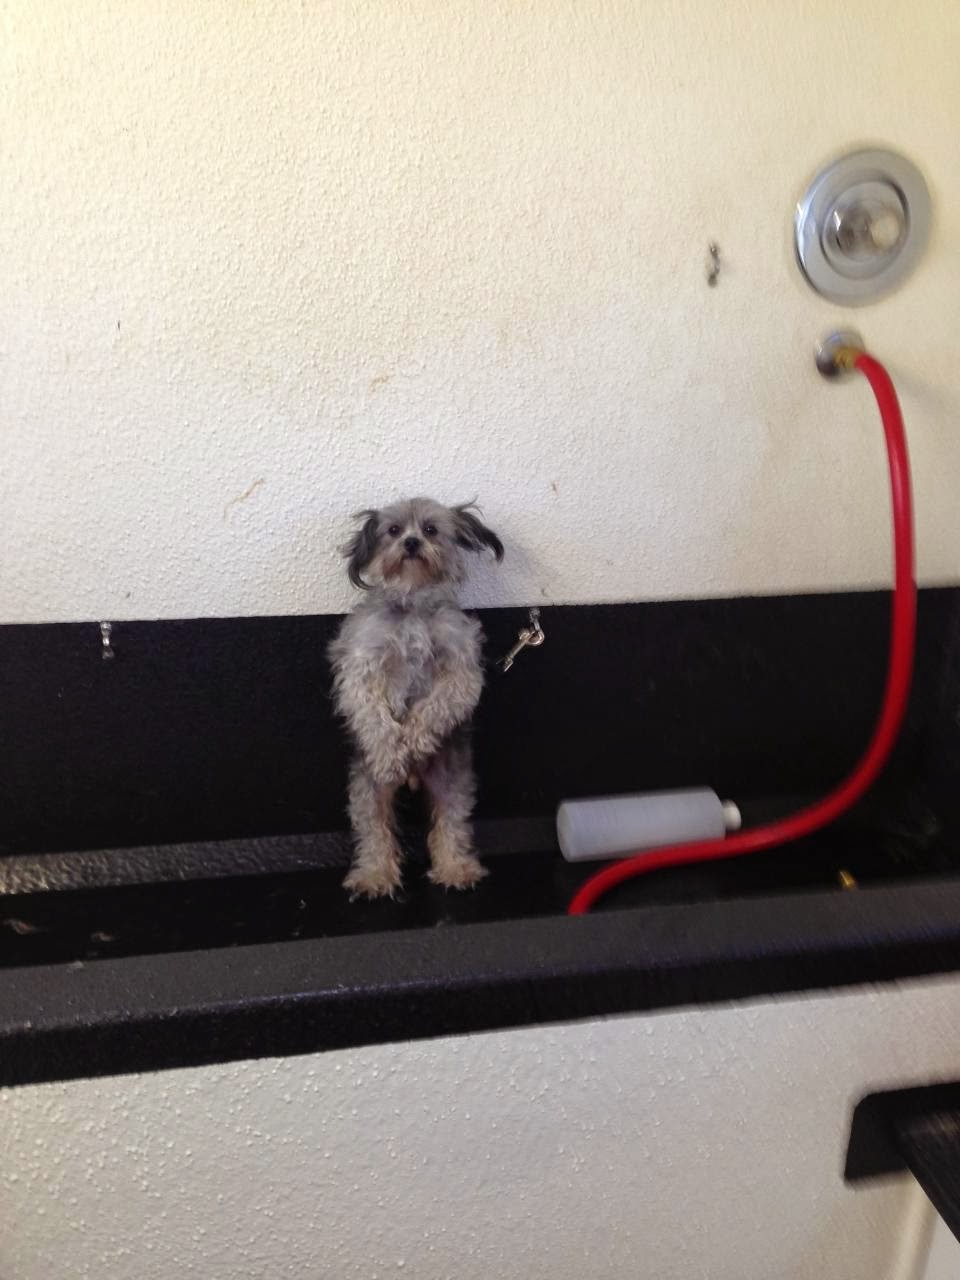 adorable dog pictures, puppy doesn't want to go bath